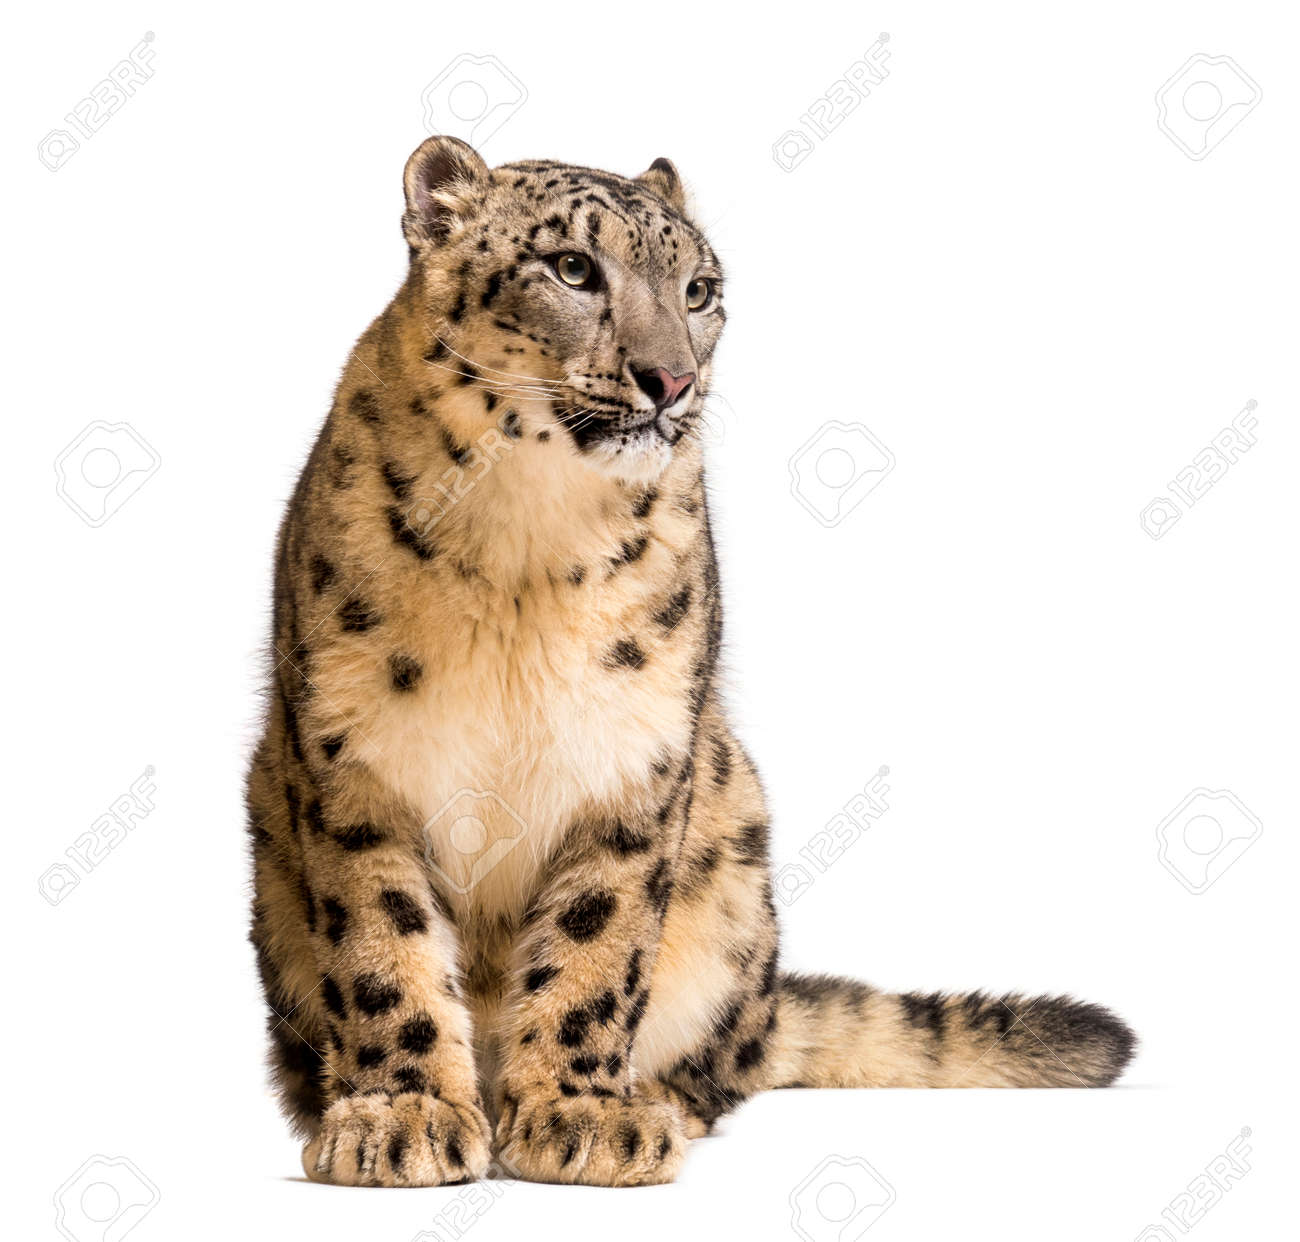 Snow leopard, Panthera uncia, also known as the ounce sitting against white background - 144446338